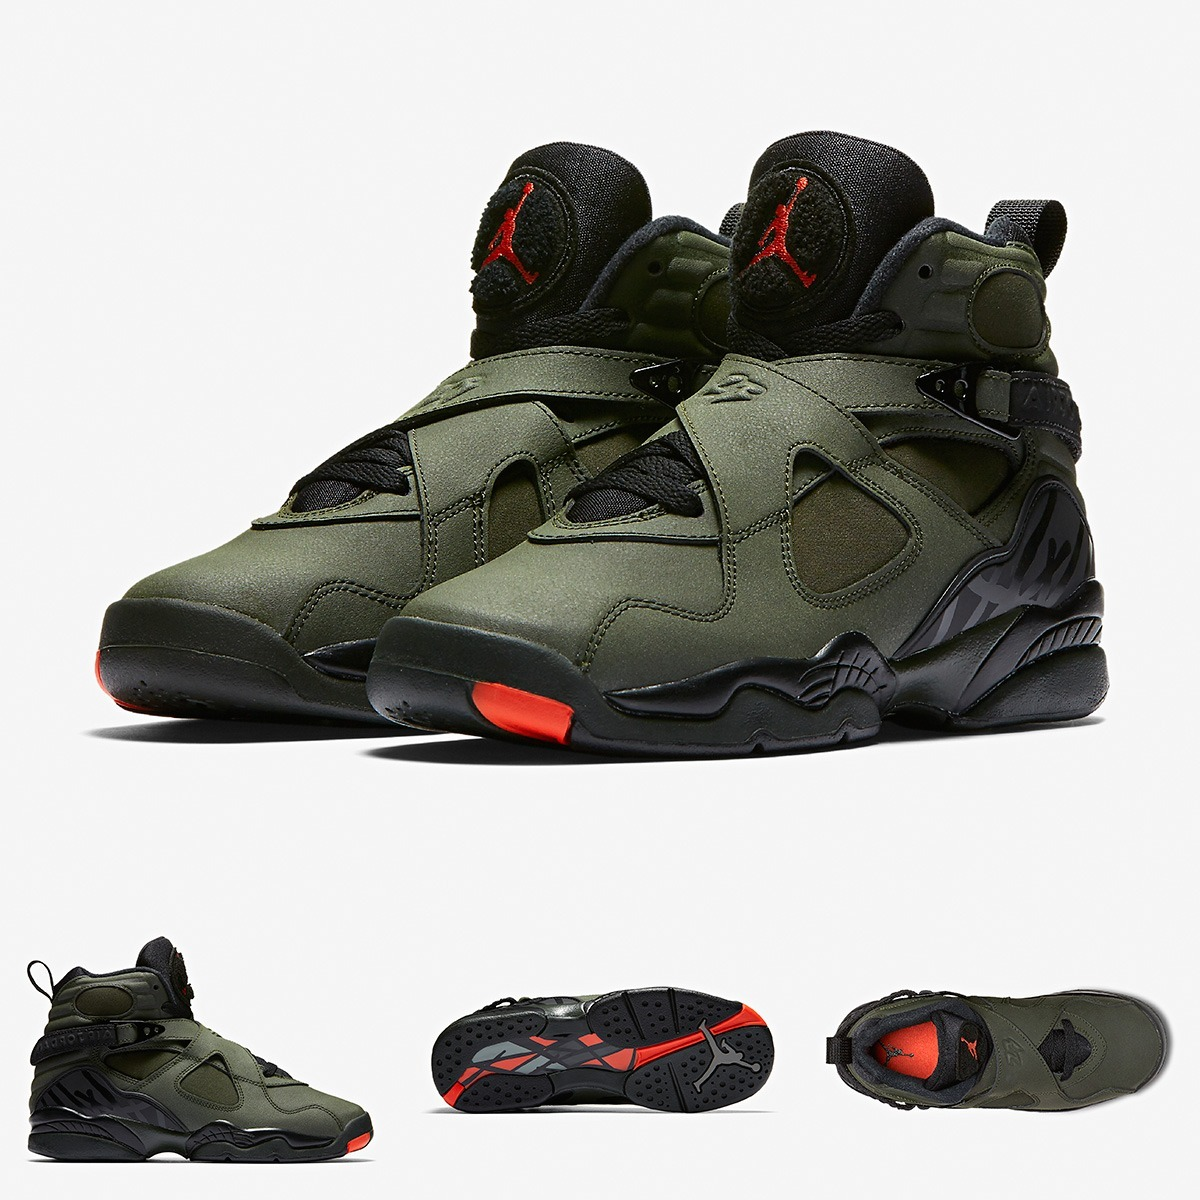 100% authentic 89e7a 53719 zapatillas nike air jordan 8 retro take flight verde. Cargando zoom.